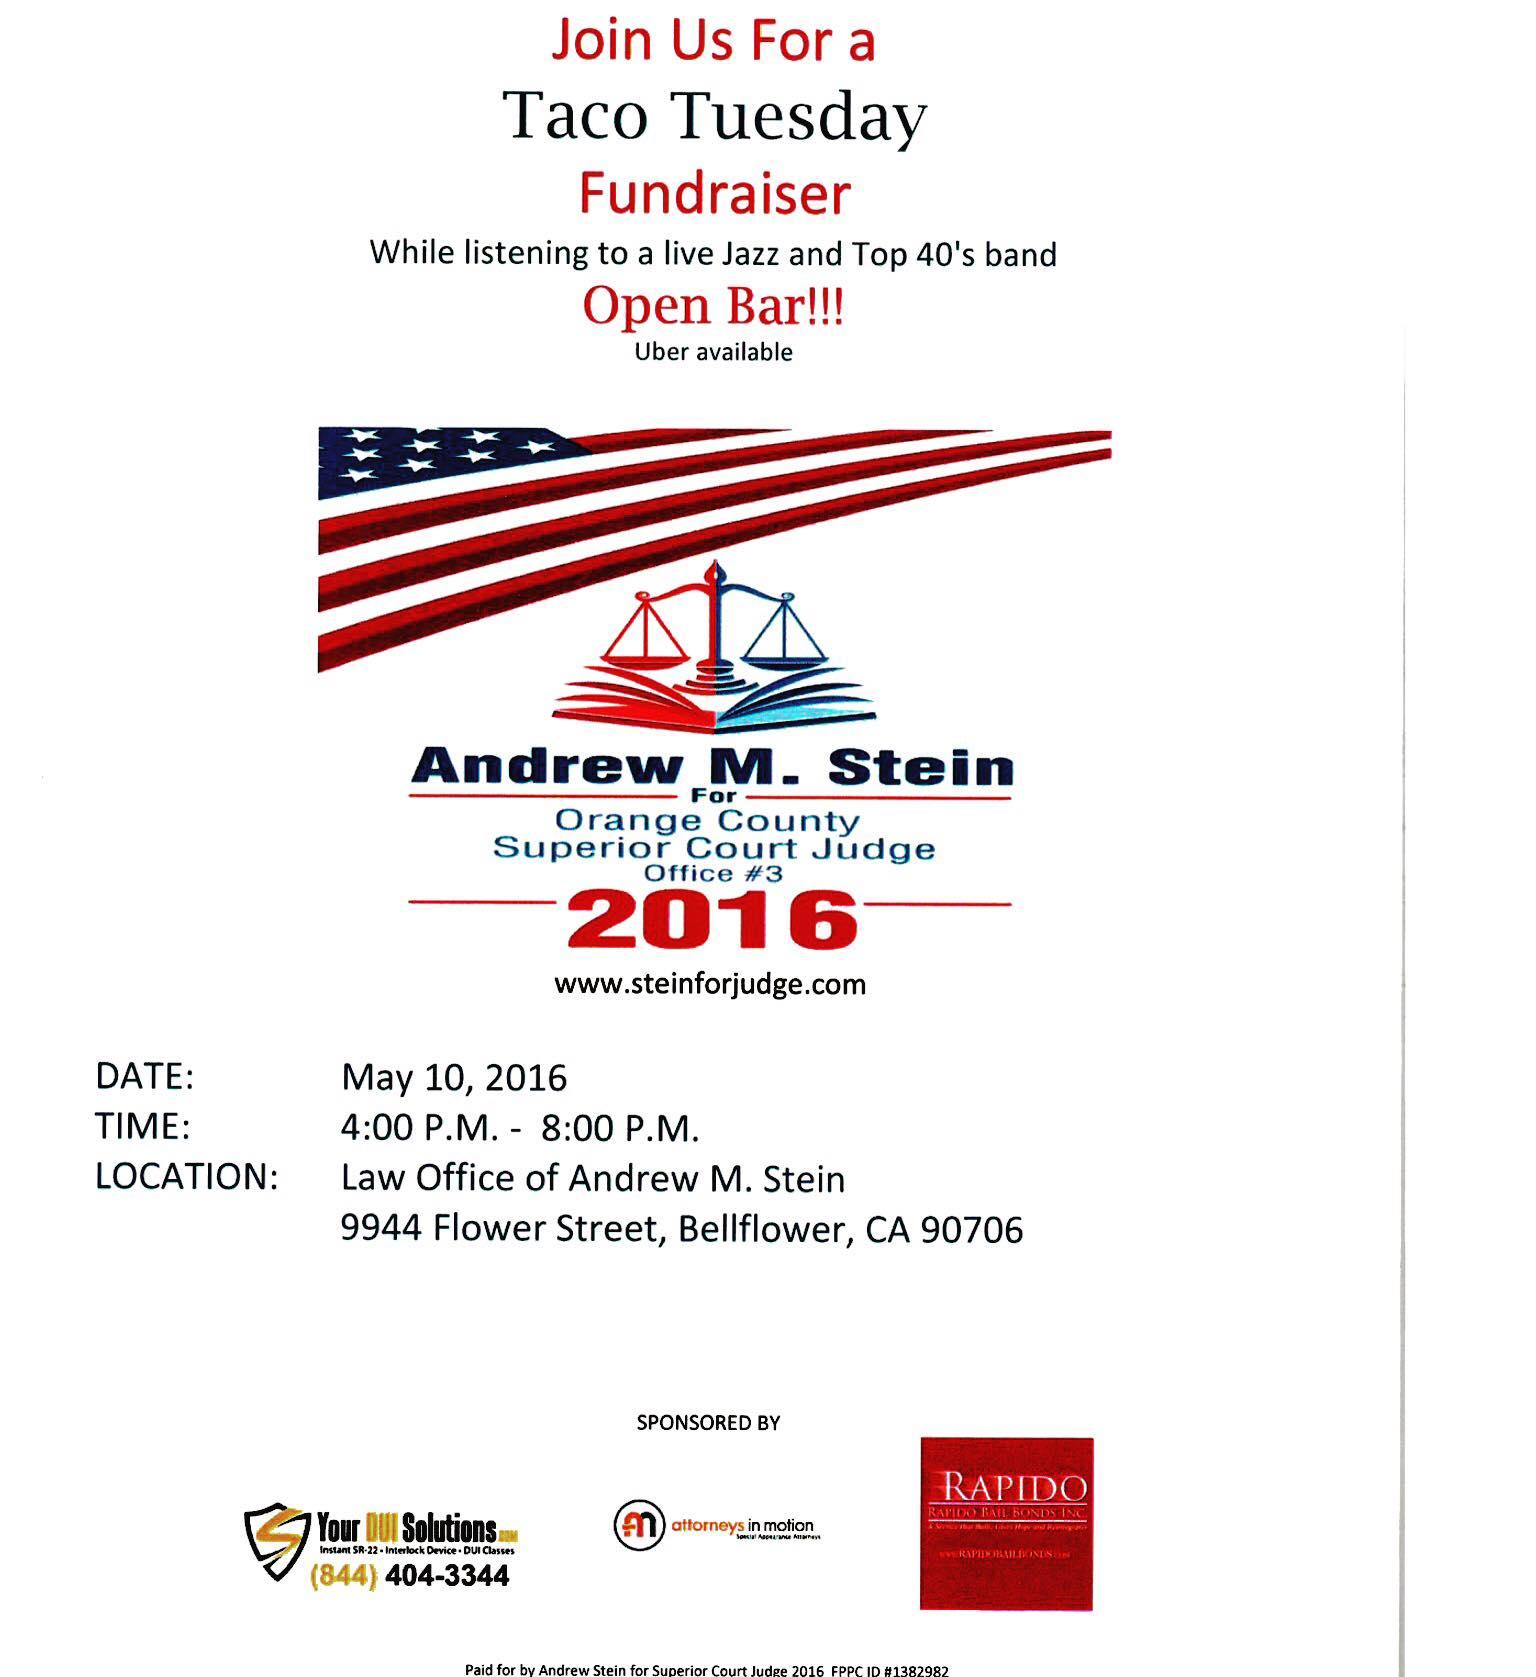 Andrew M. Stein For Orange County Superior Court 2016